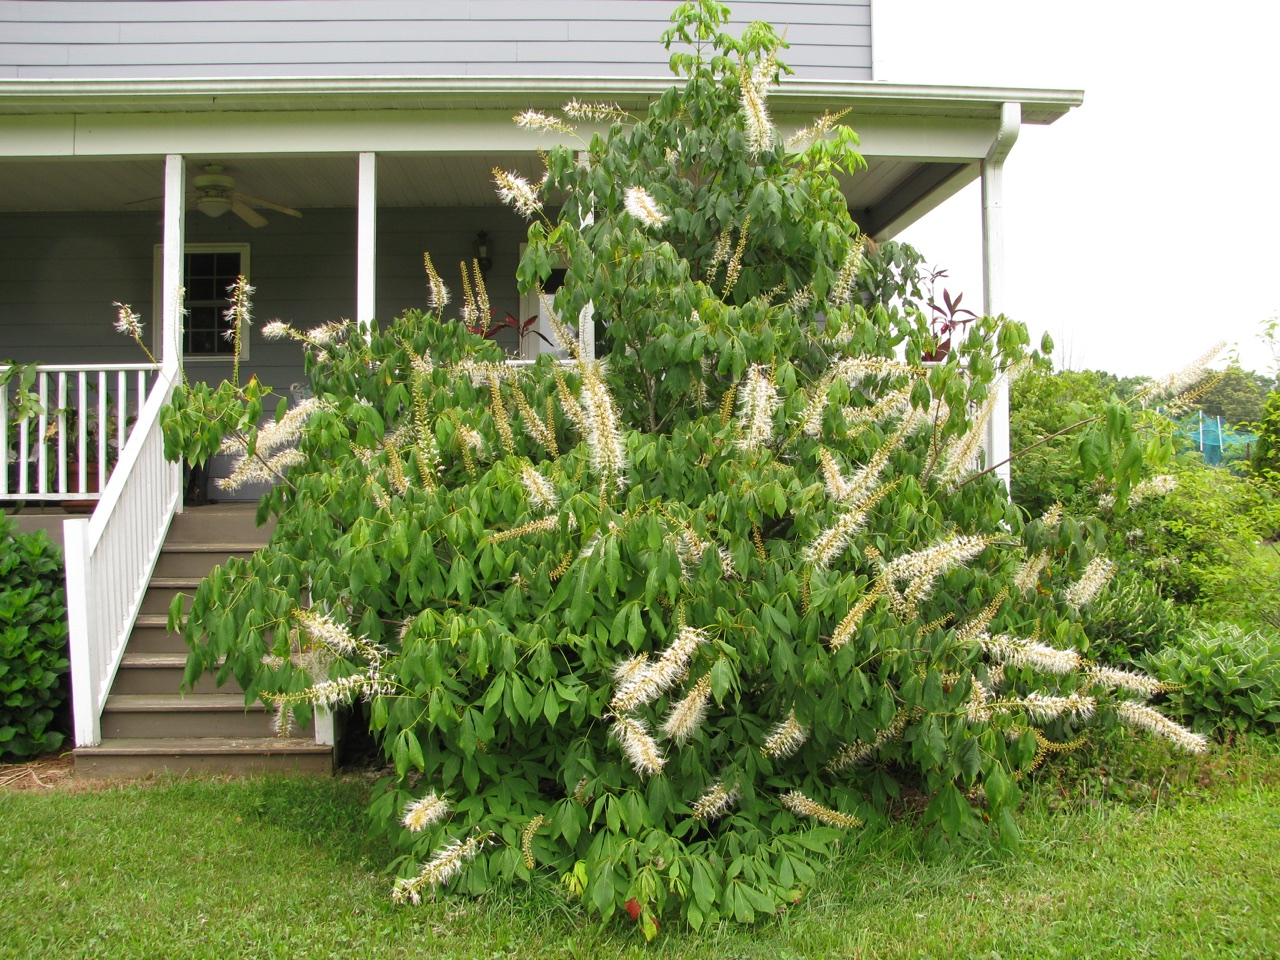 The Scientific Name is Aesculus parviflora. You will likely hear them called Bottlebrush Buckeye. This picture shows the Large shrub. Because sited in a sunnier location than it prefers, the palmately compound leaves tend to droop. Progression of flowering on the spike is from the bottom to the tip. of Aesculus parviflora